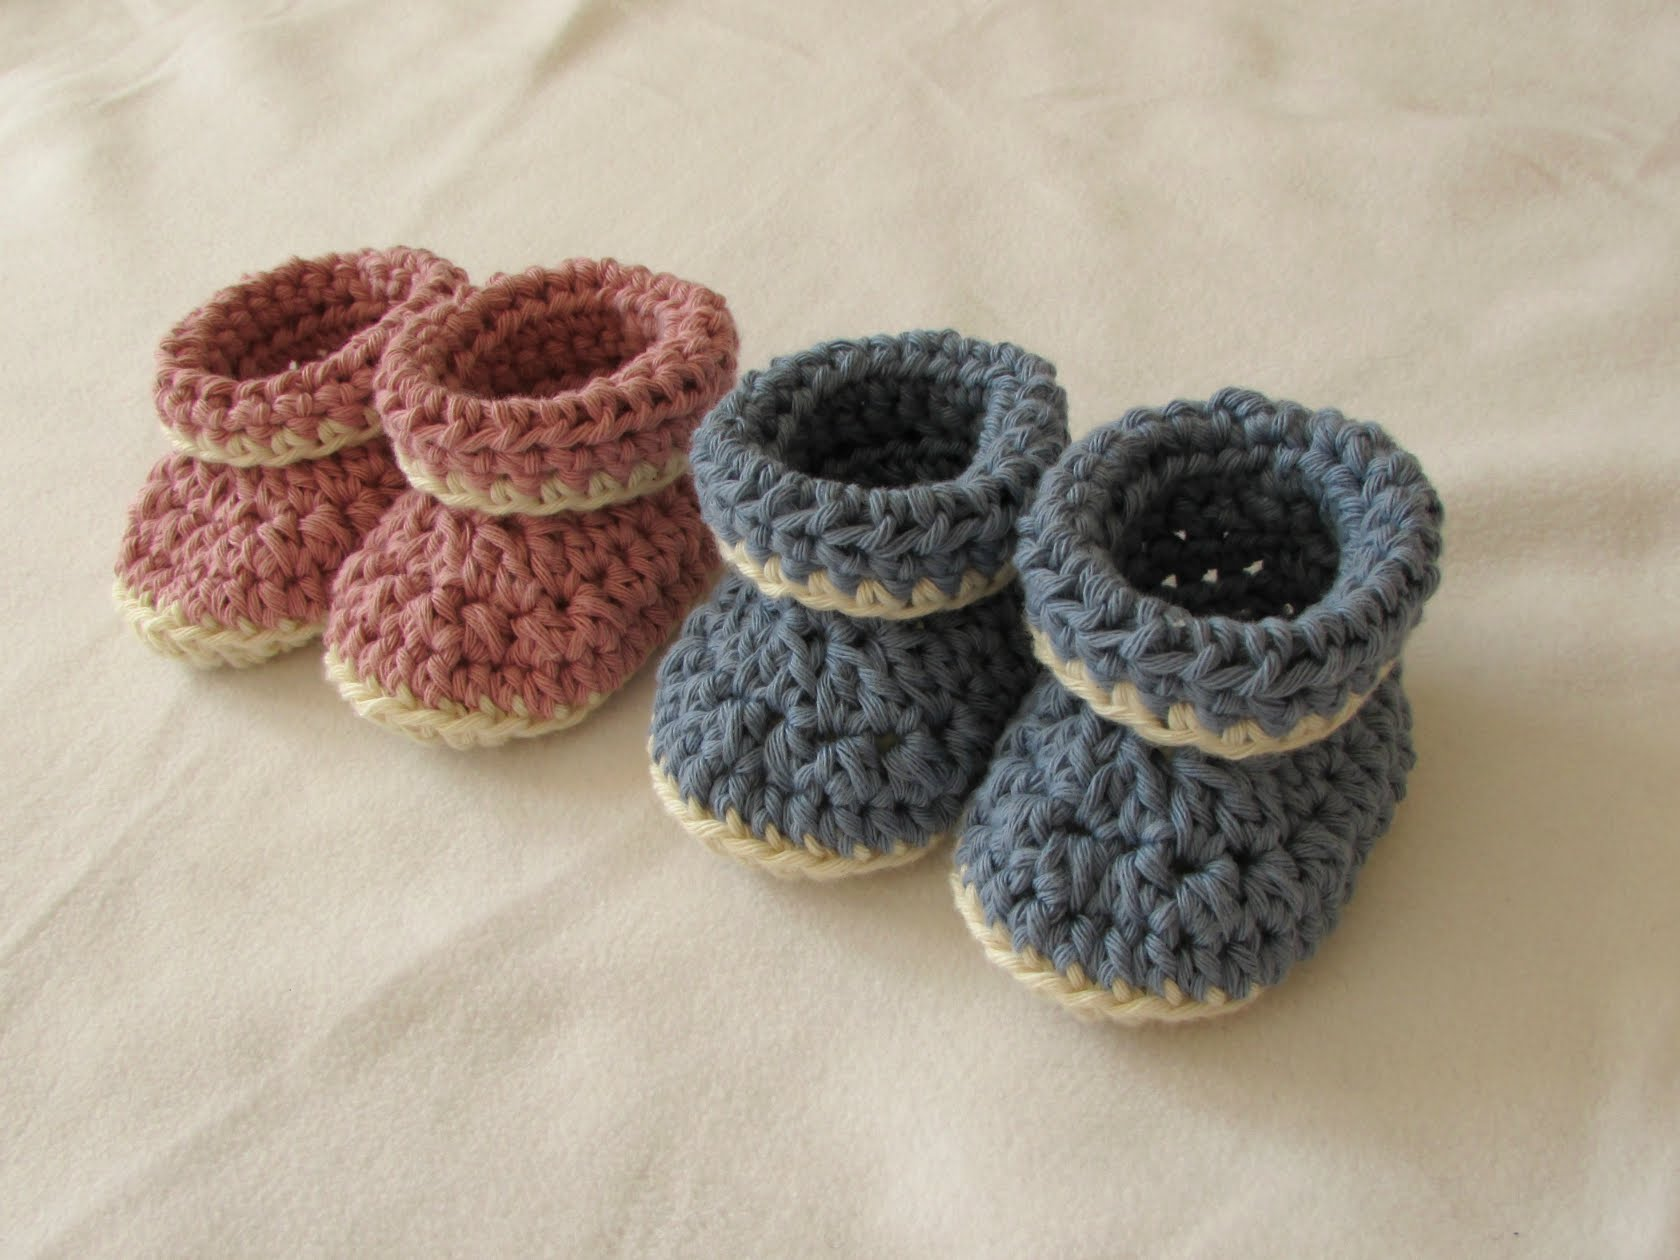 crochet baby shoes very easy crochet cuffed baby booties tutorial - roll top baby shoes for ewirchk